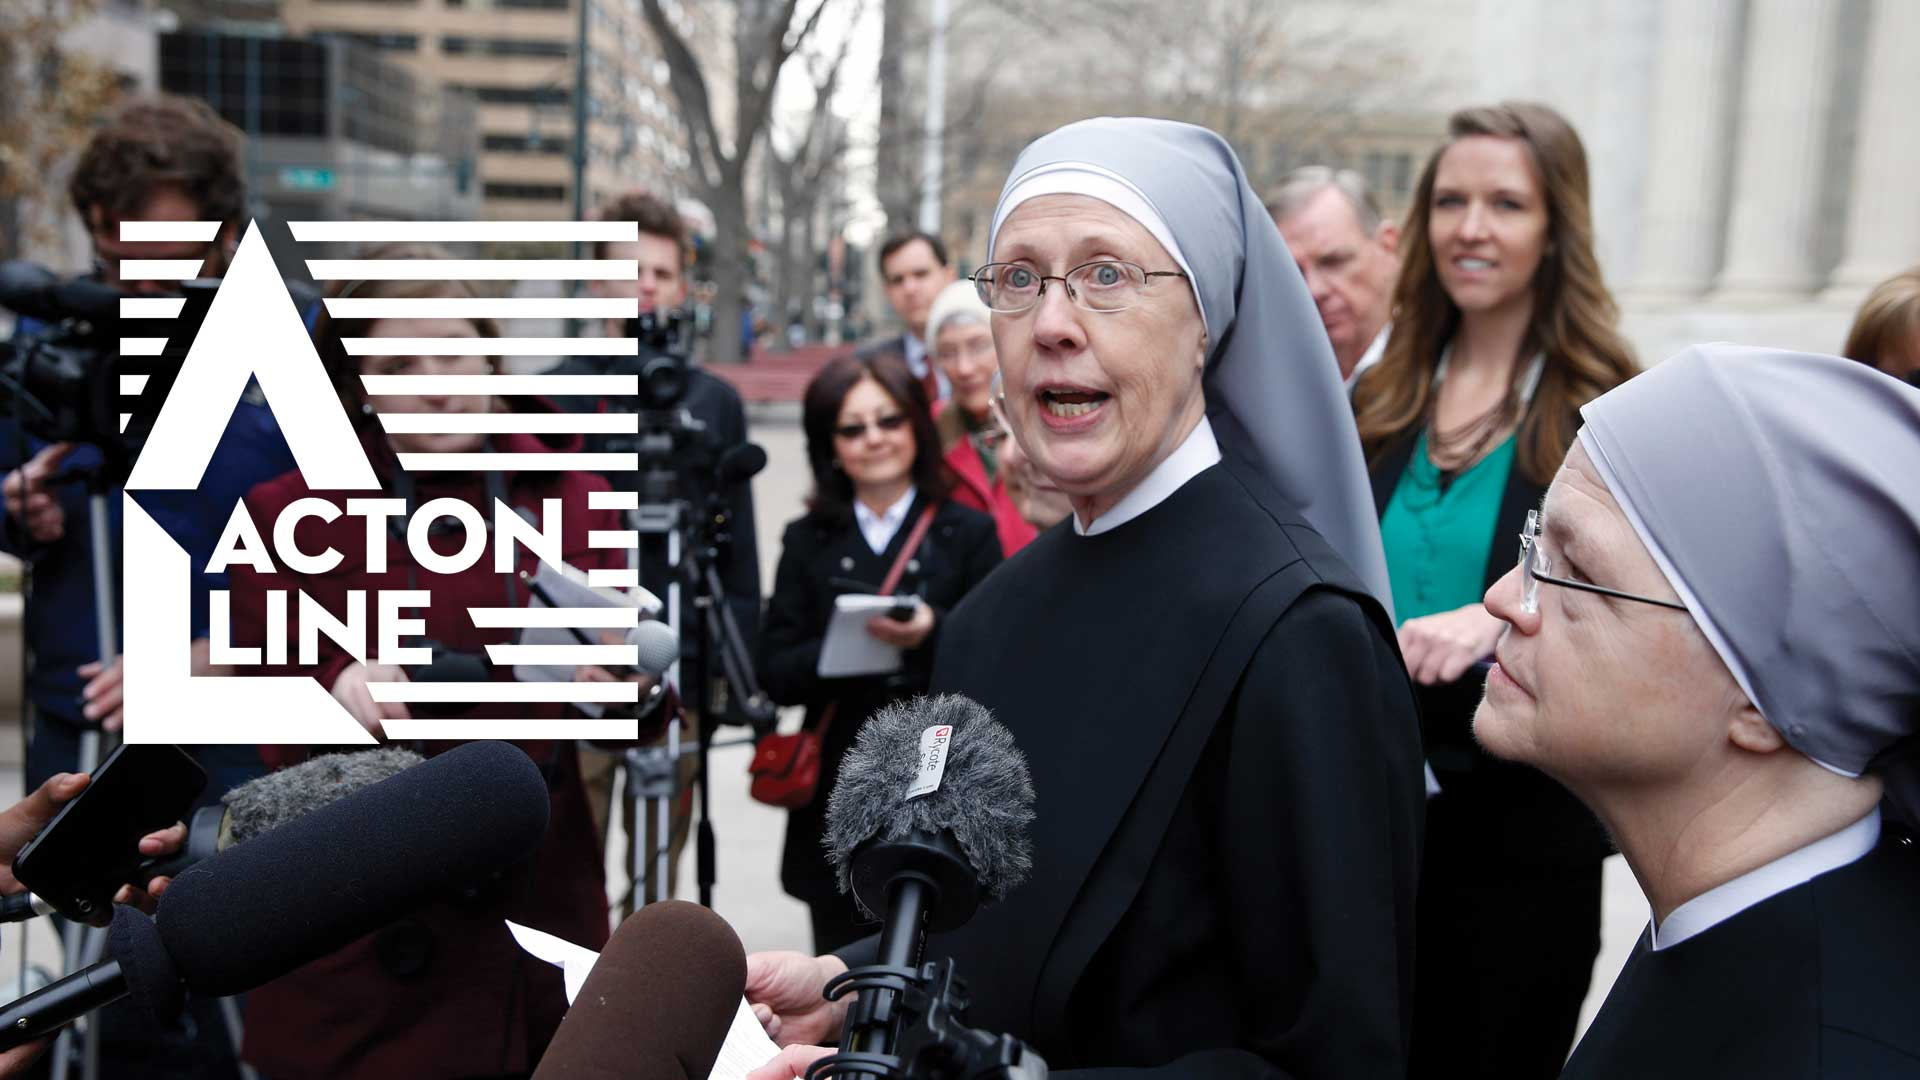 Little Sisters of the Poor give a statement to the press outside of a court building